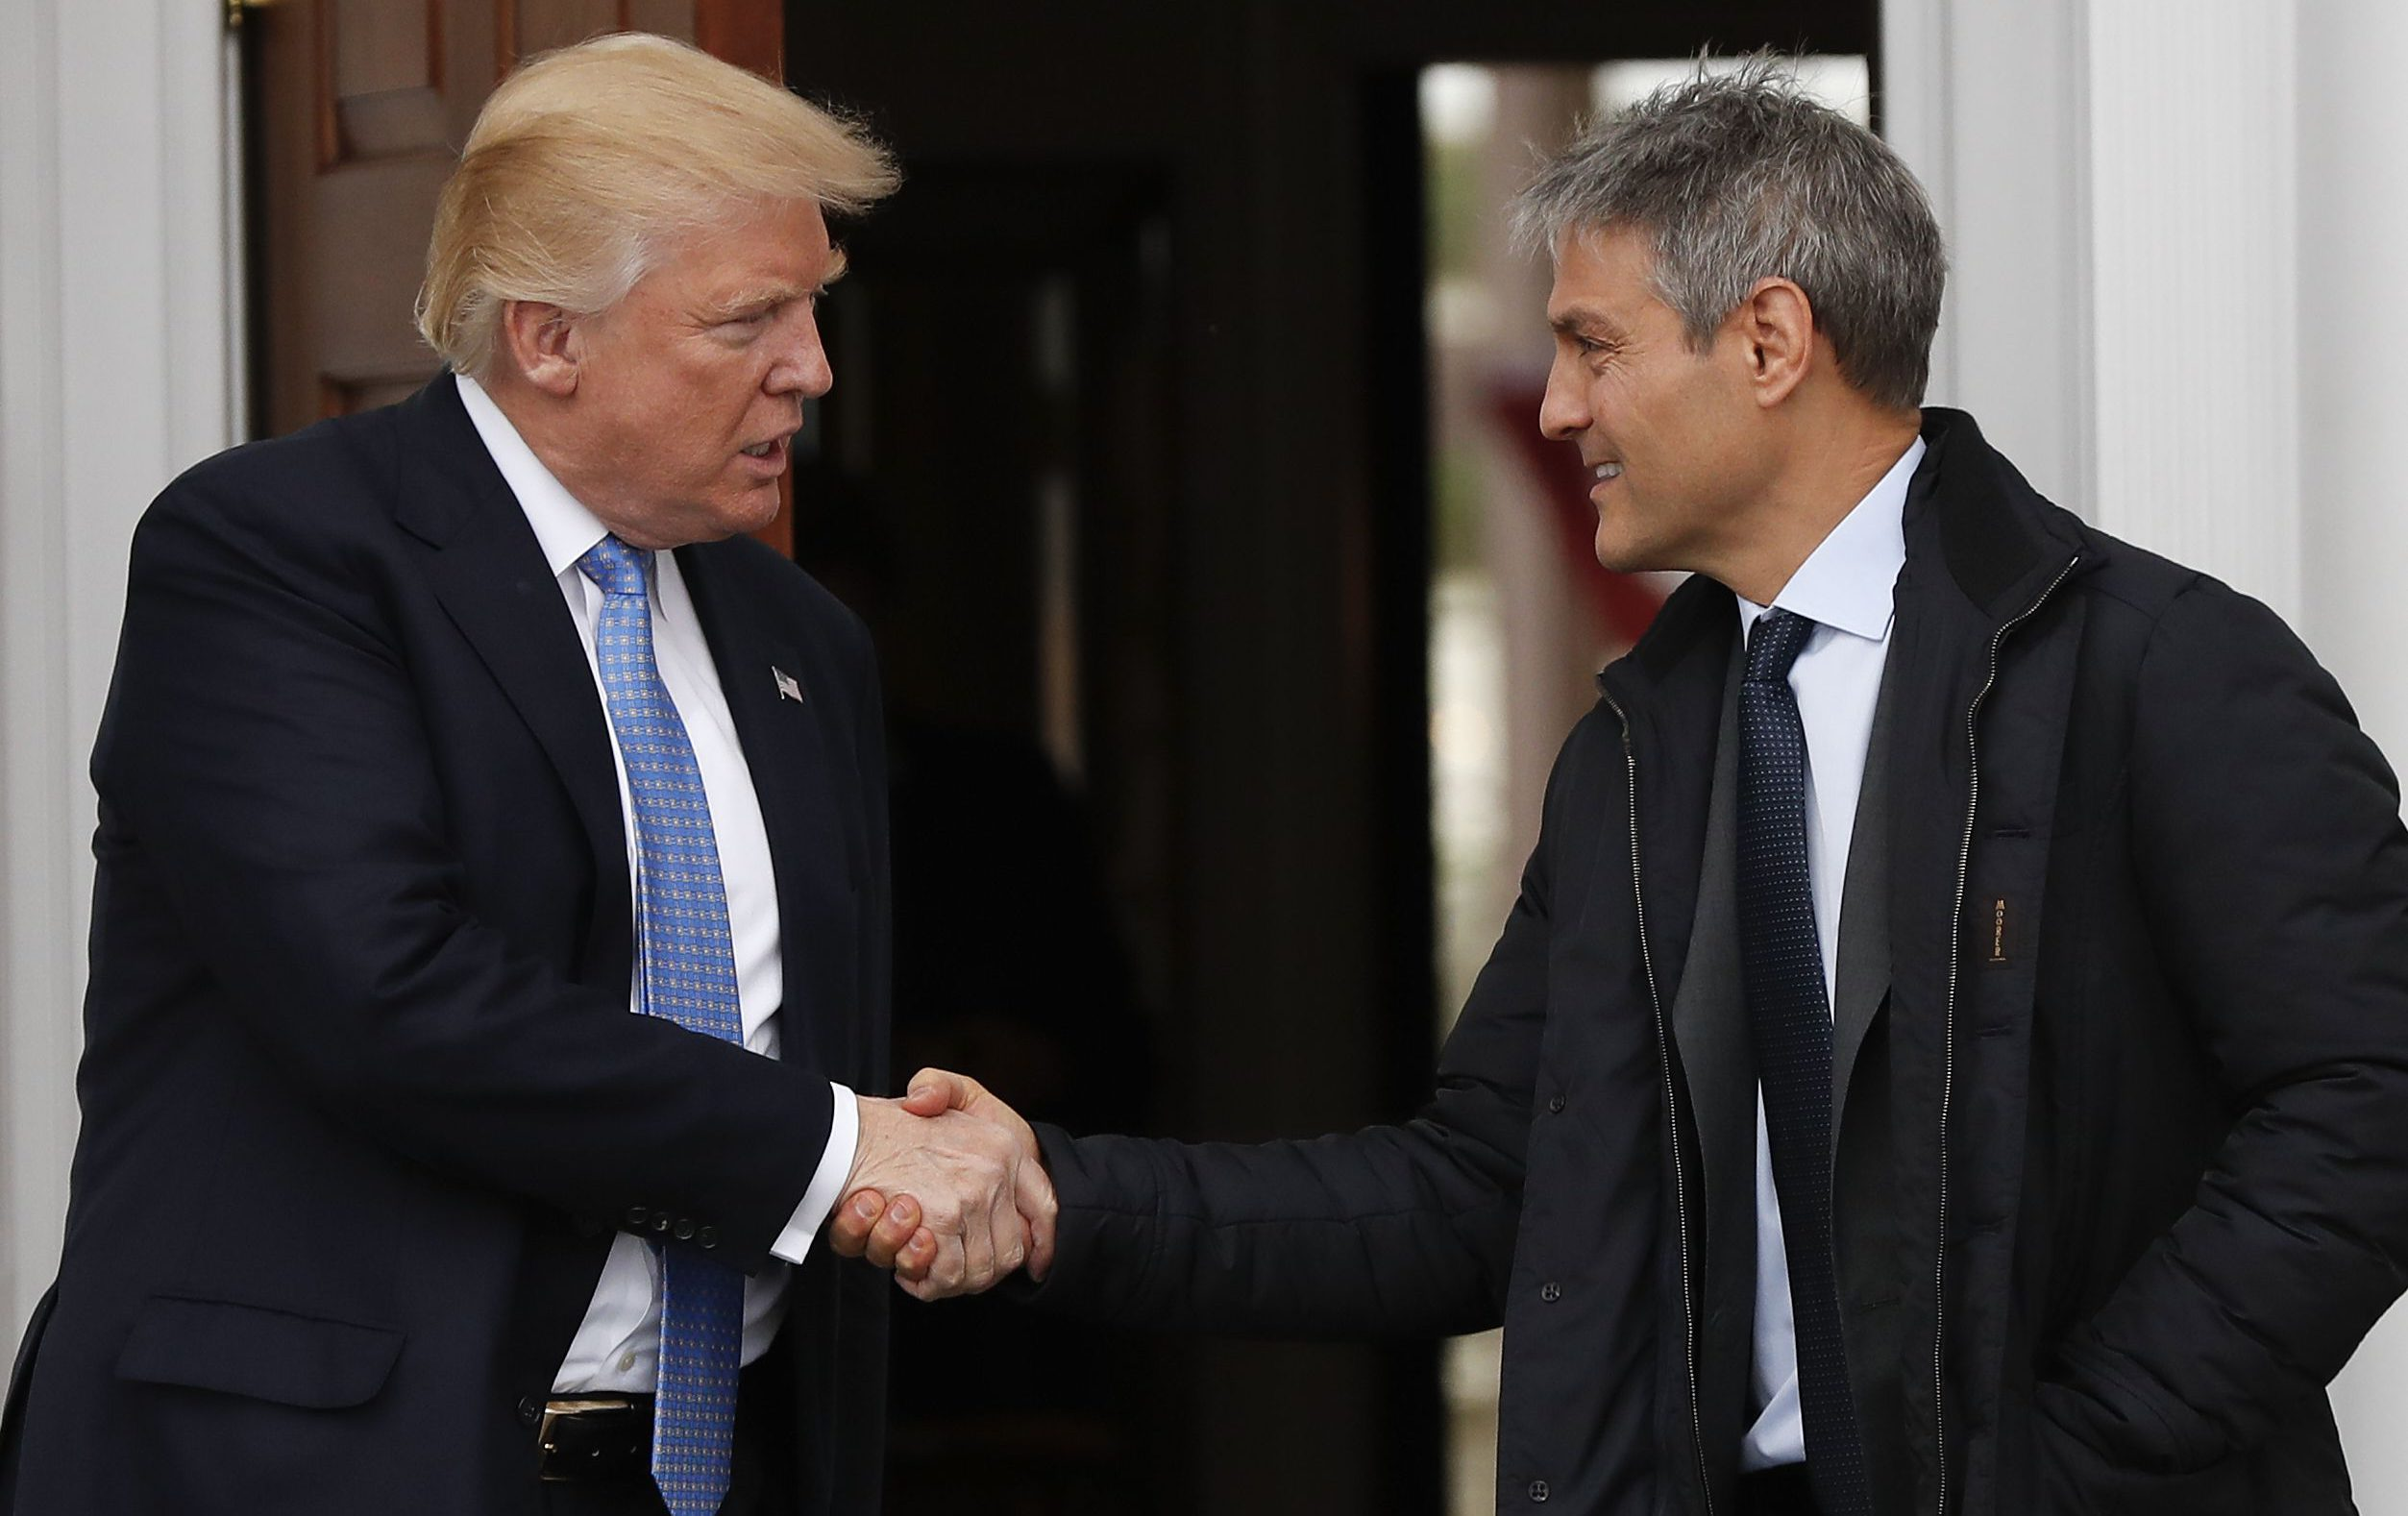 President-elect Donald Trump shakes hands with Ari Emanuel as he leaves the Trump National Golf Club Bedminster clubhouse, Sunday, Nov. 20, 2016 in Bedminster, N.J.. (AP Photo/Carolyn Kaster)